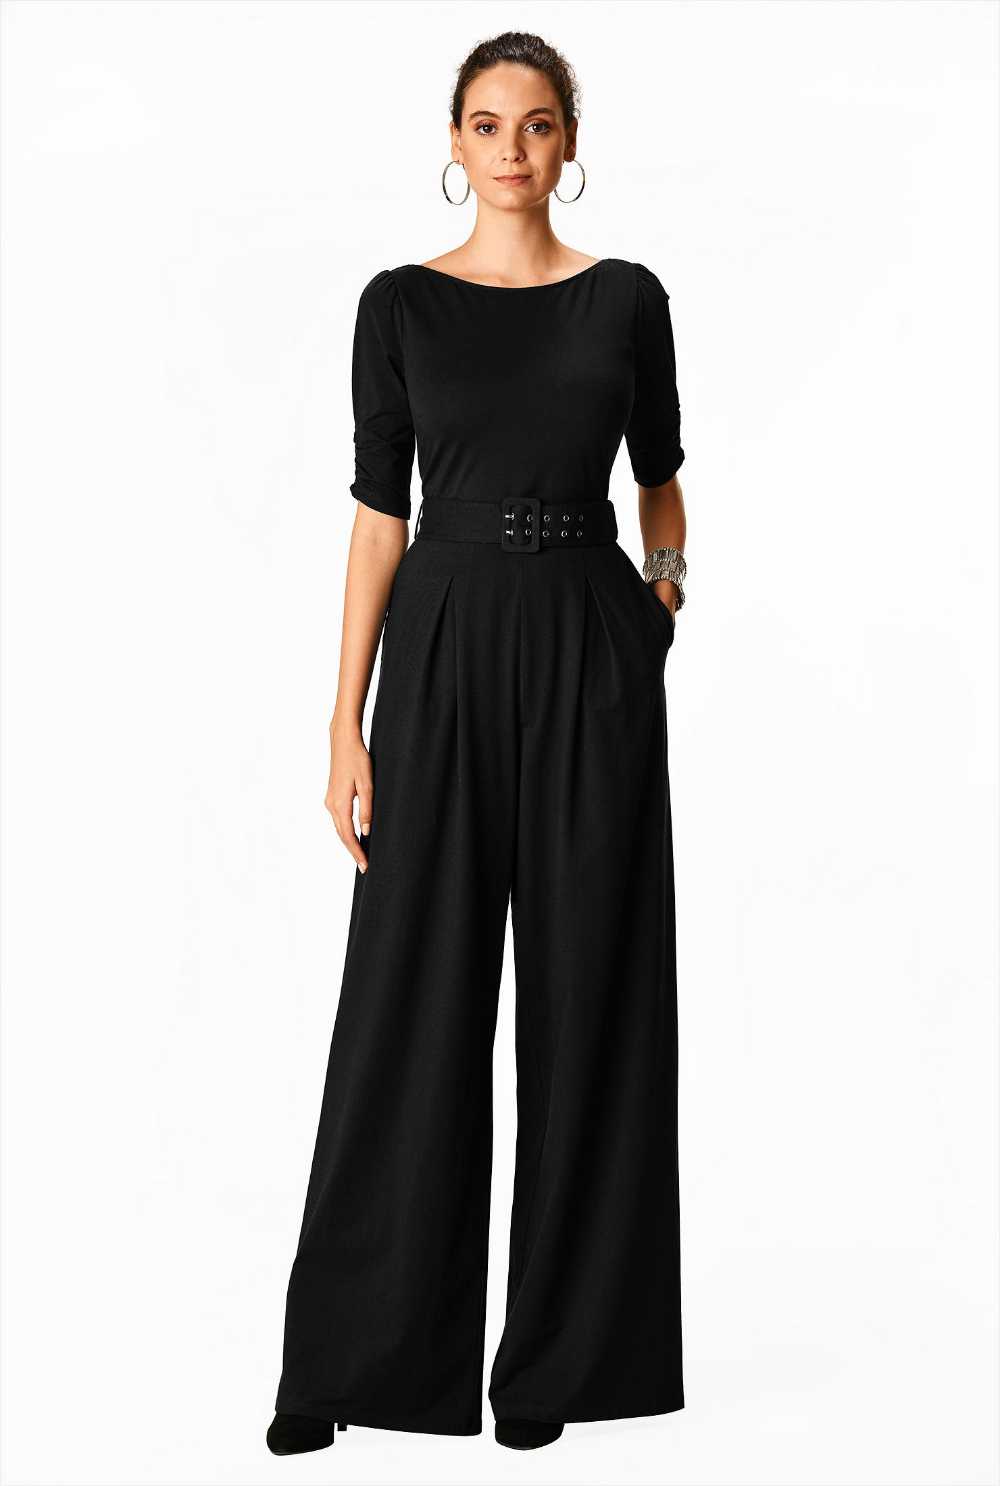 Cotton knit belted palazzo jumpsuit - Women's Clothing 0 ...